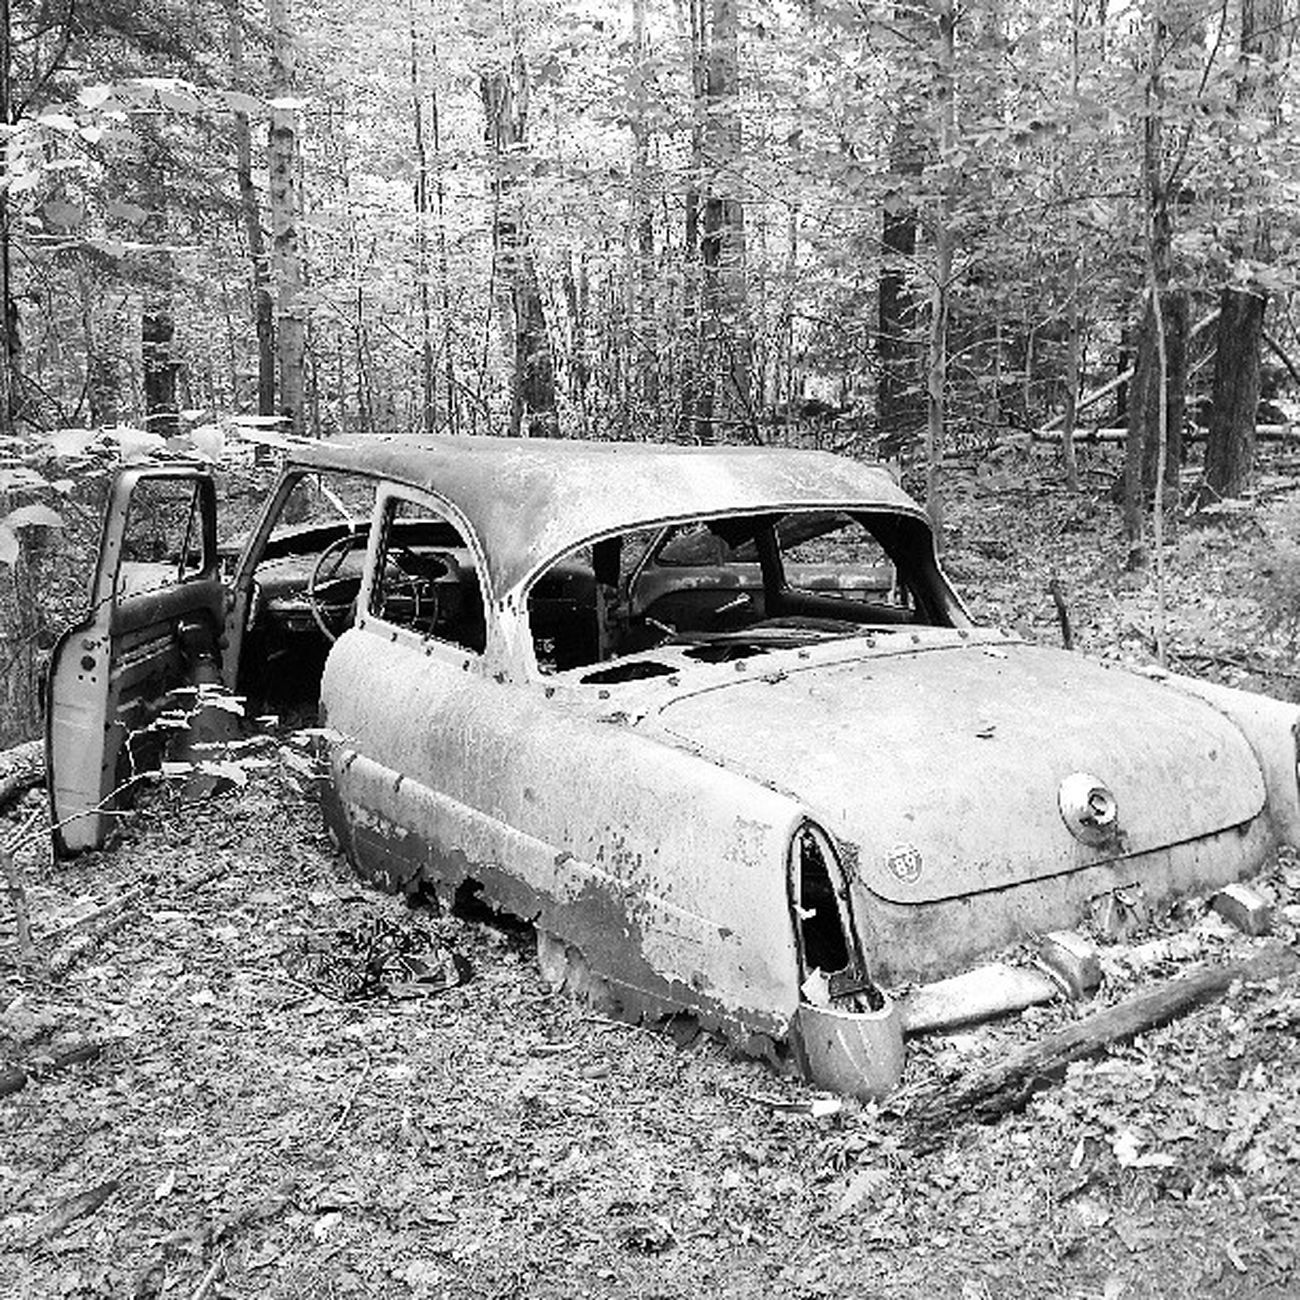 Now where did I park the car, again? Mobbsfarm Jericho Hiking Trail vtphoto igvermont blackandwhite weirdstuffyoufindontrails